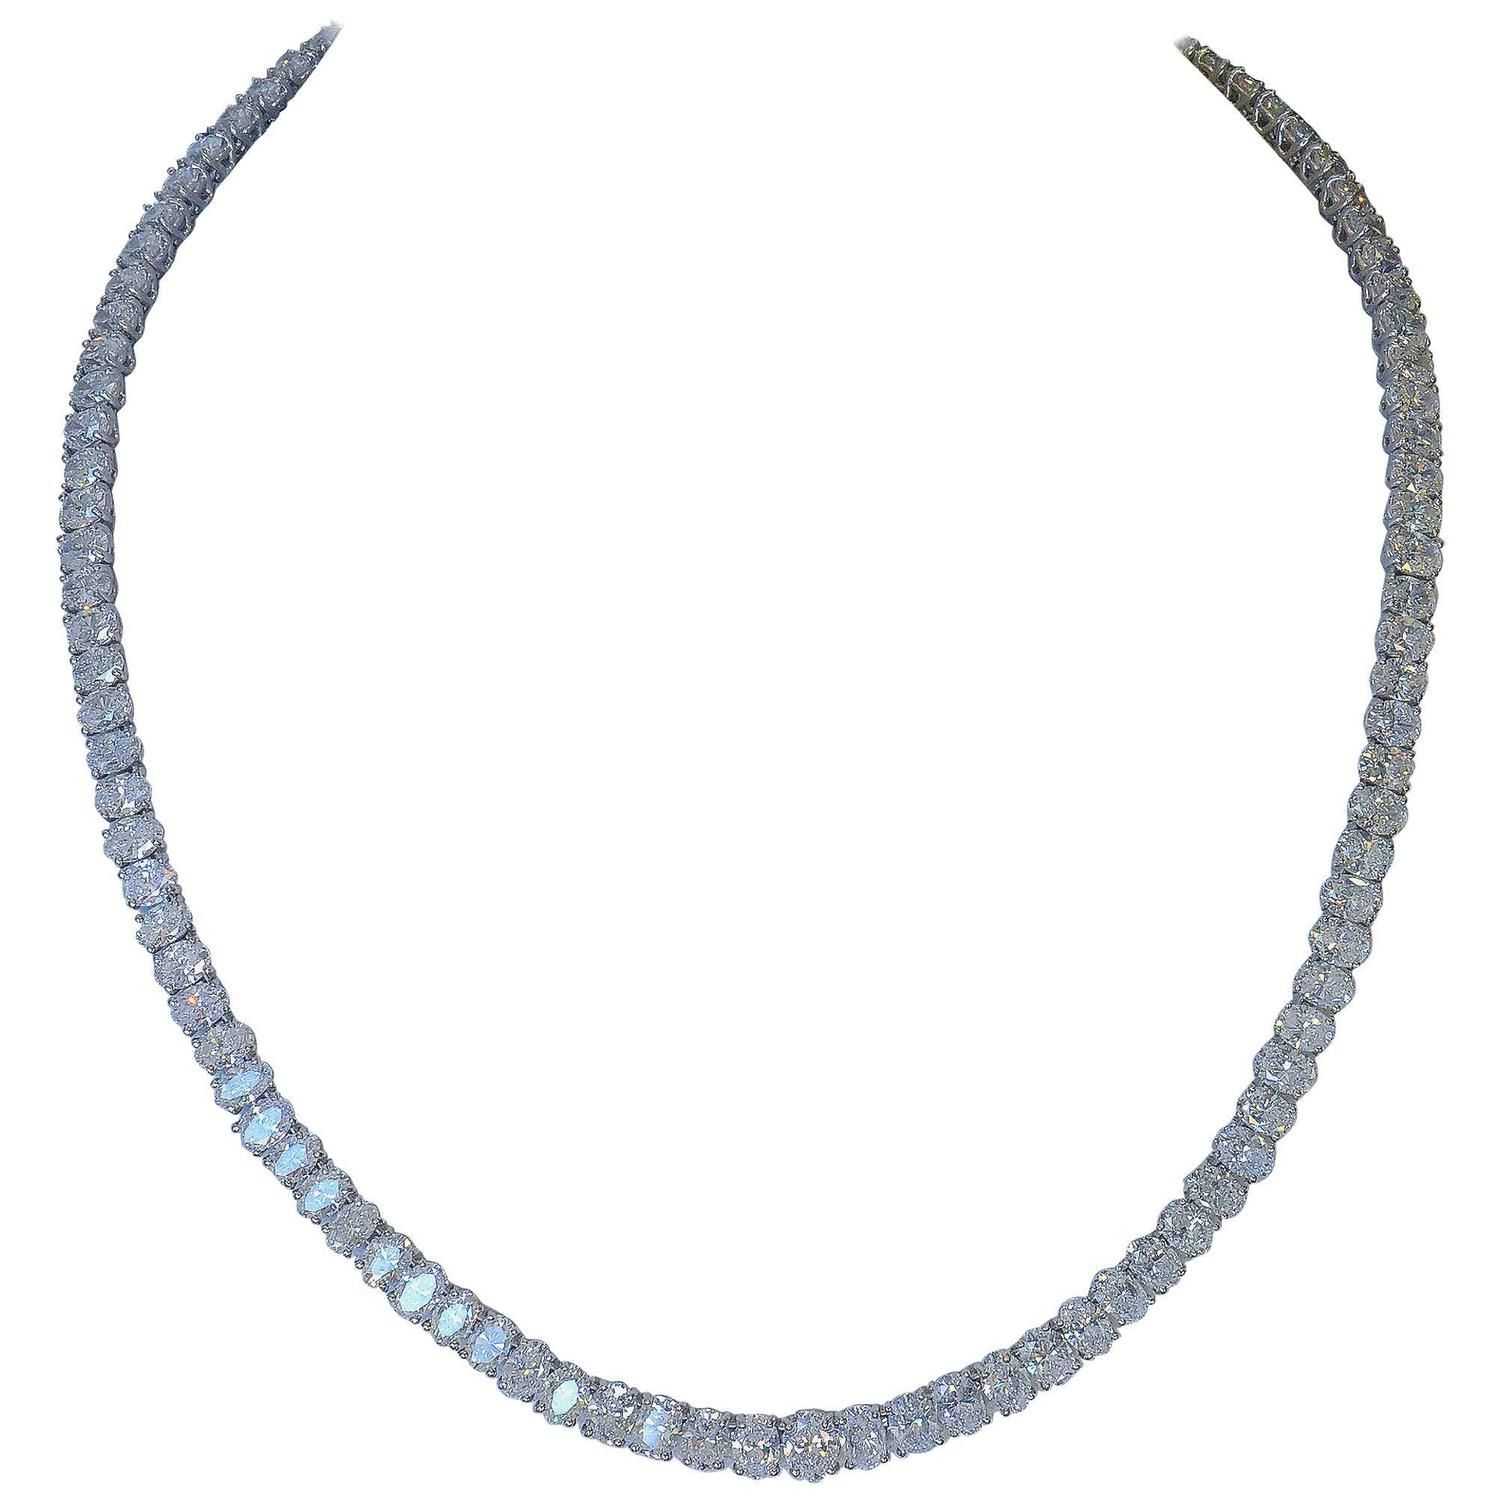 Harry Winston Diamond Platinum Necklace | From a unique collection of vintage more necklaces at https://www.1stdibs.com/jewelry/necklaces/more-necklaces/